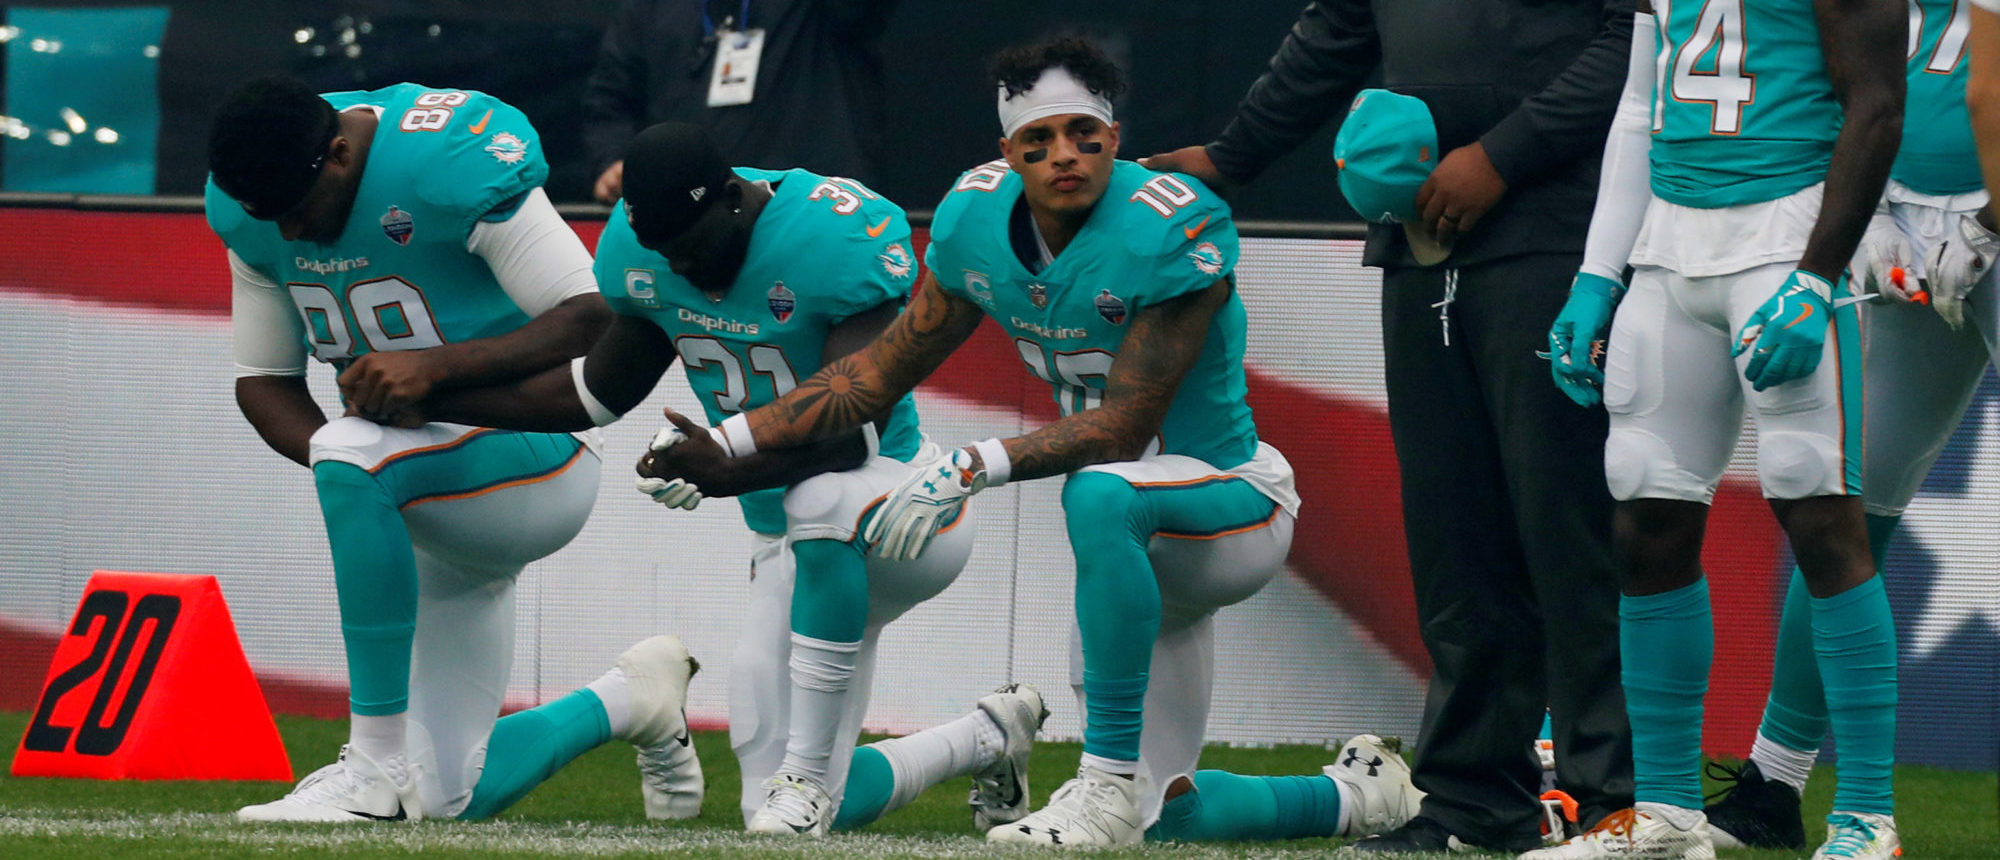 Miami Dolphins players kneel during the U.S. national anthem before a game against the New Orleans Saints at Wembley Stadium in London, October 1, 2017. Action Images via Reuters/Paul Childs